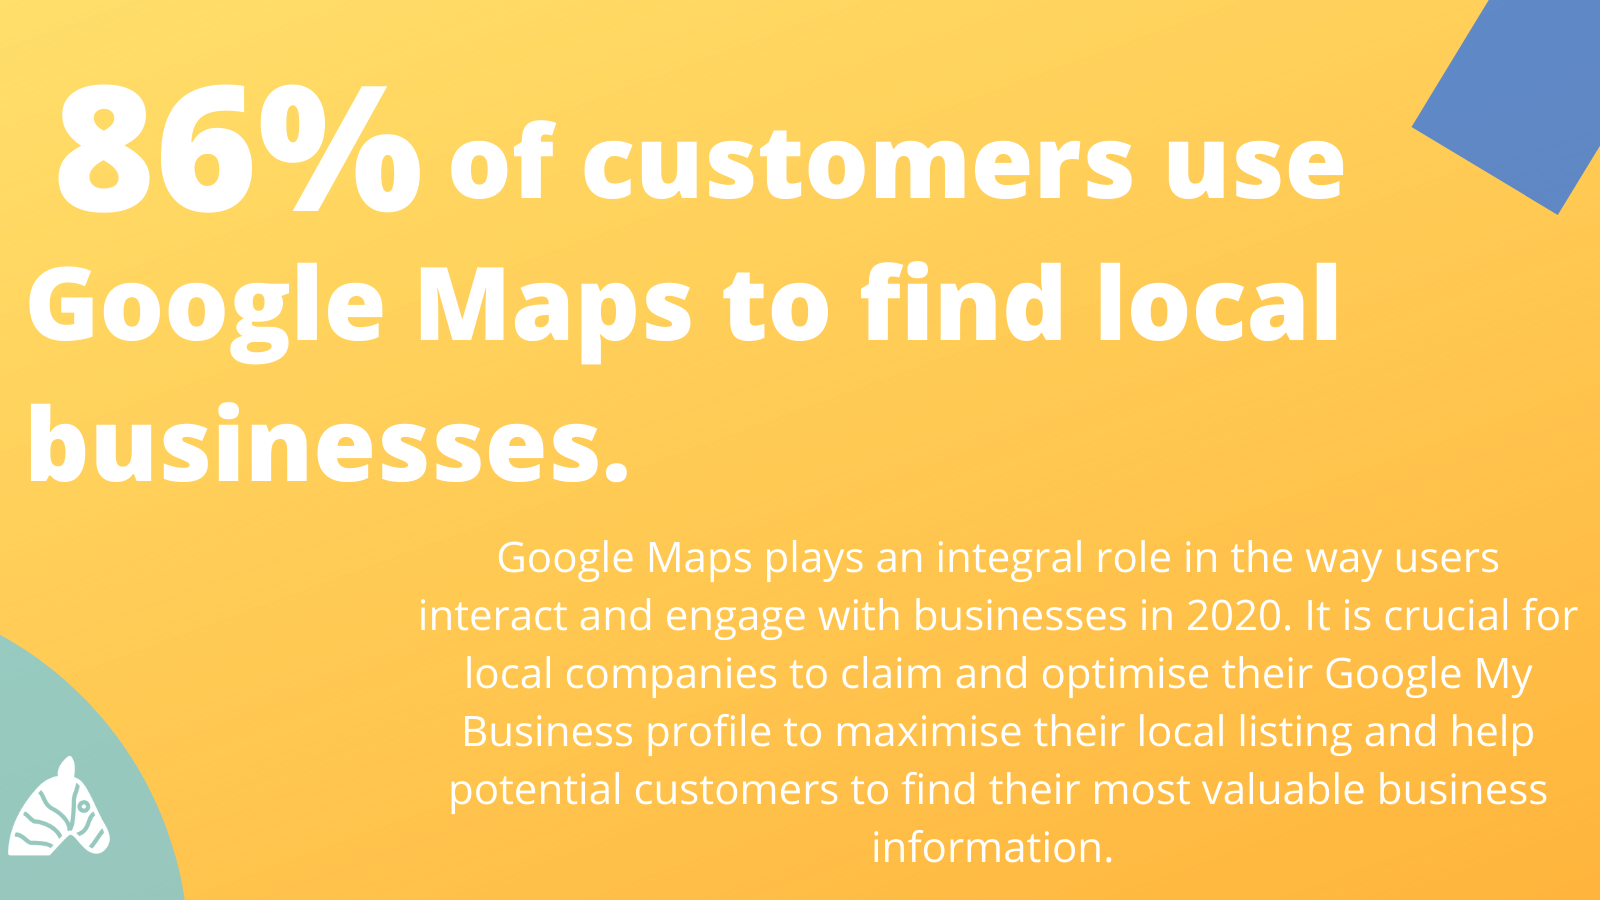 local seo statistic relating to the use of google maps to find local business